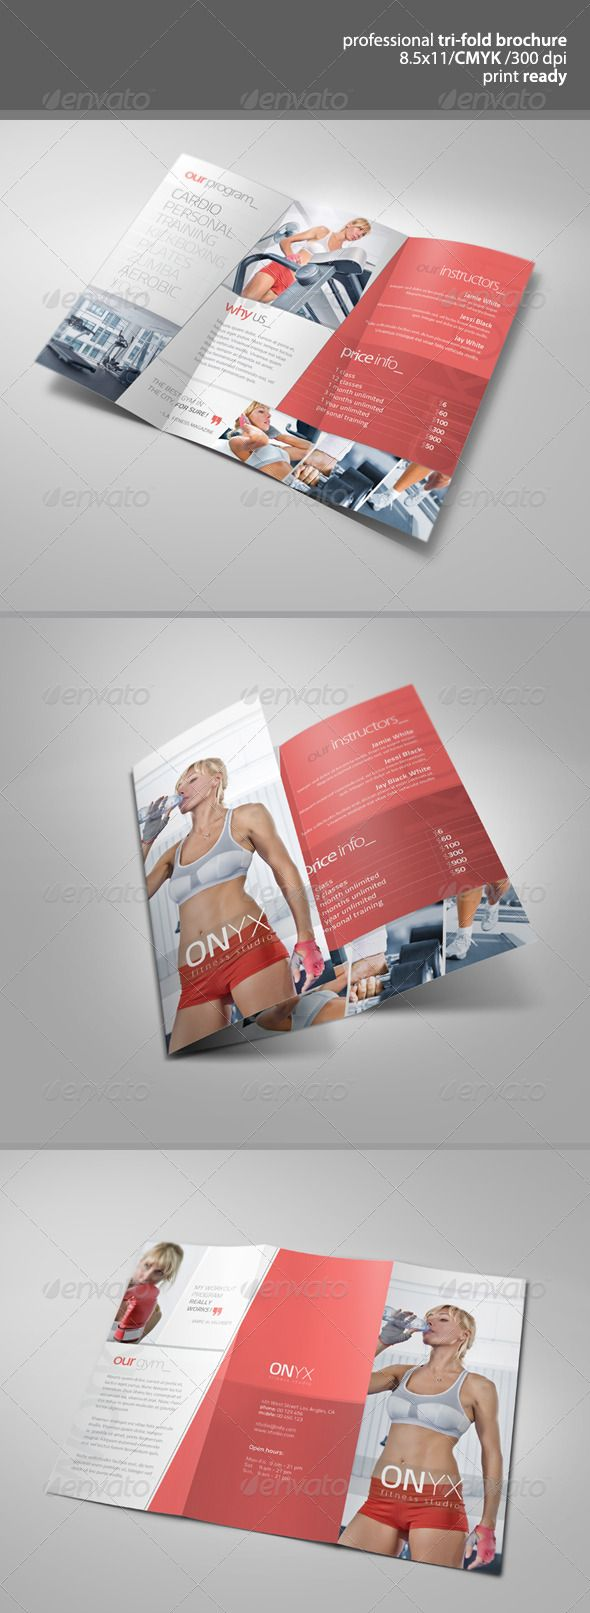 227 best images about 2014 tri fold brochure on pinterest for Fitness brochure design